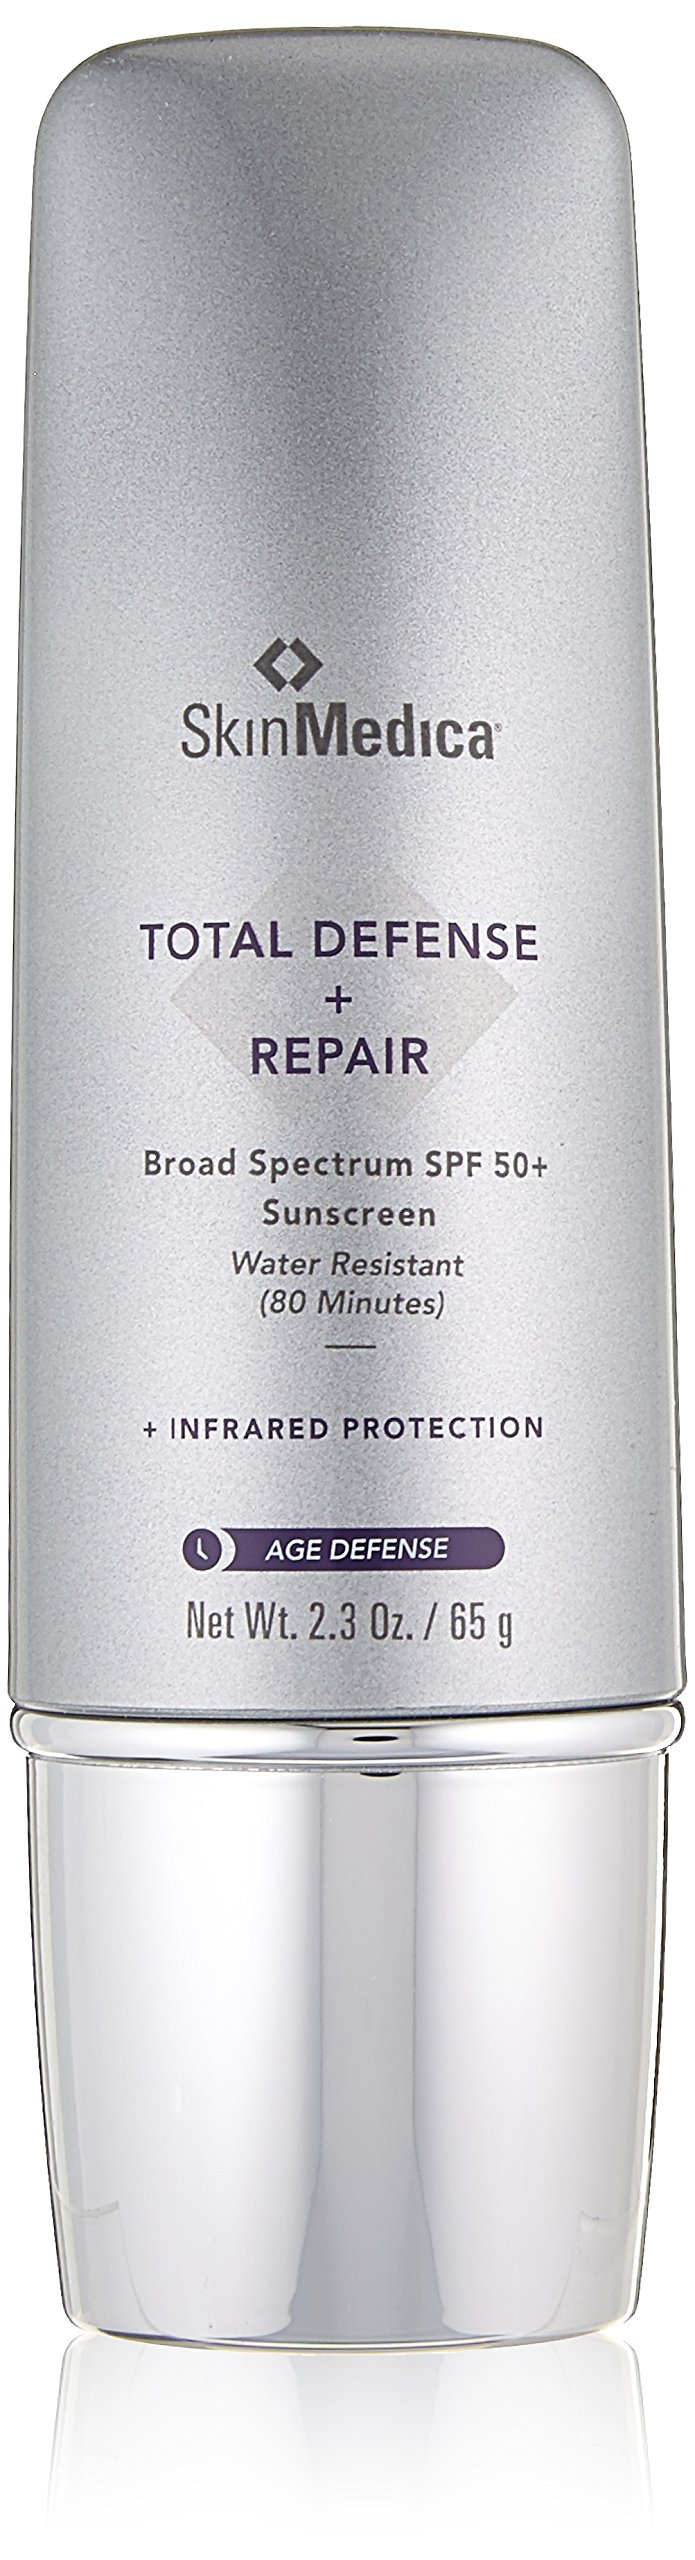 SkinMedica Total Defense Plus Repair Sunscreen, SPF 50, 2.3 oz.